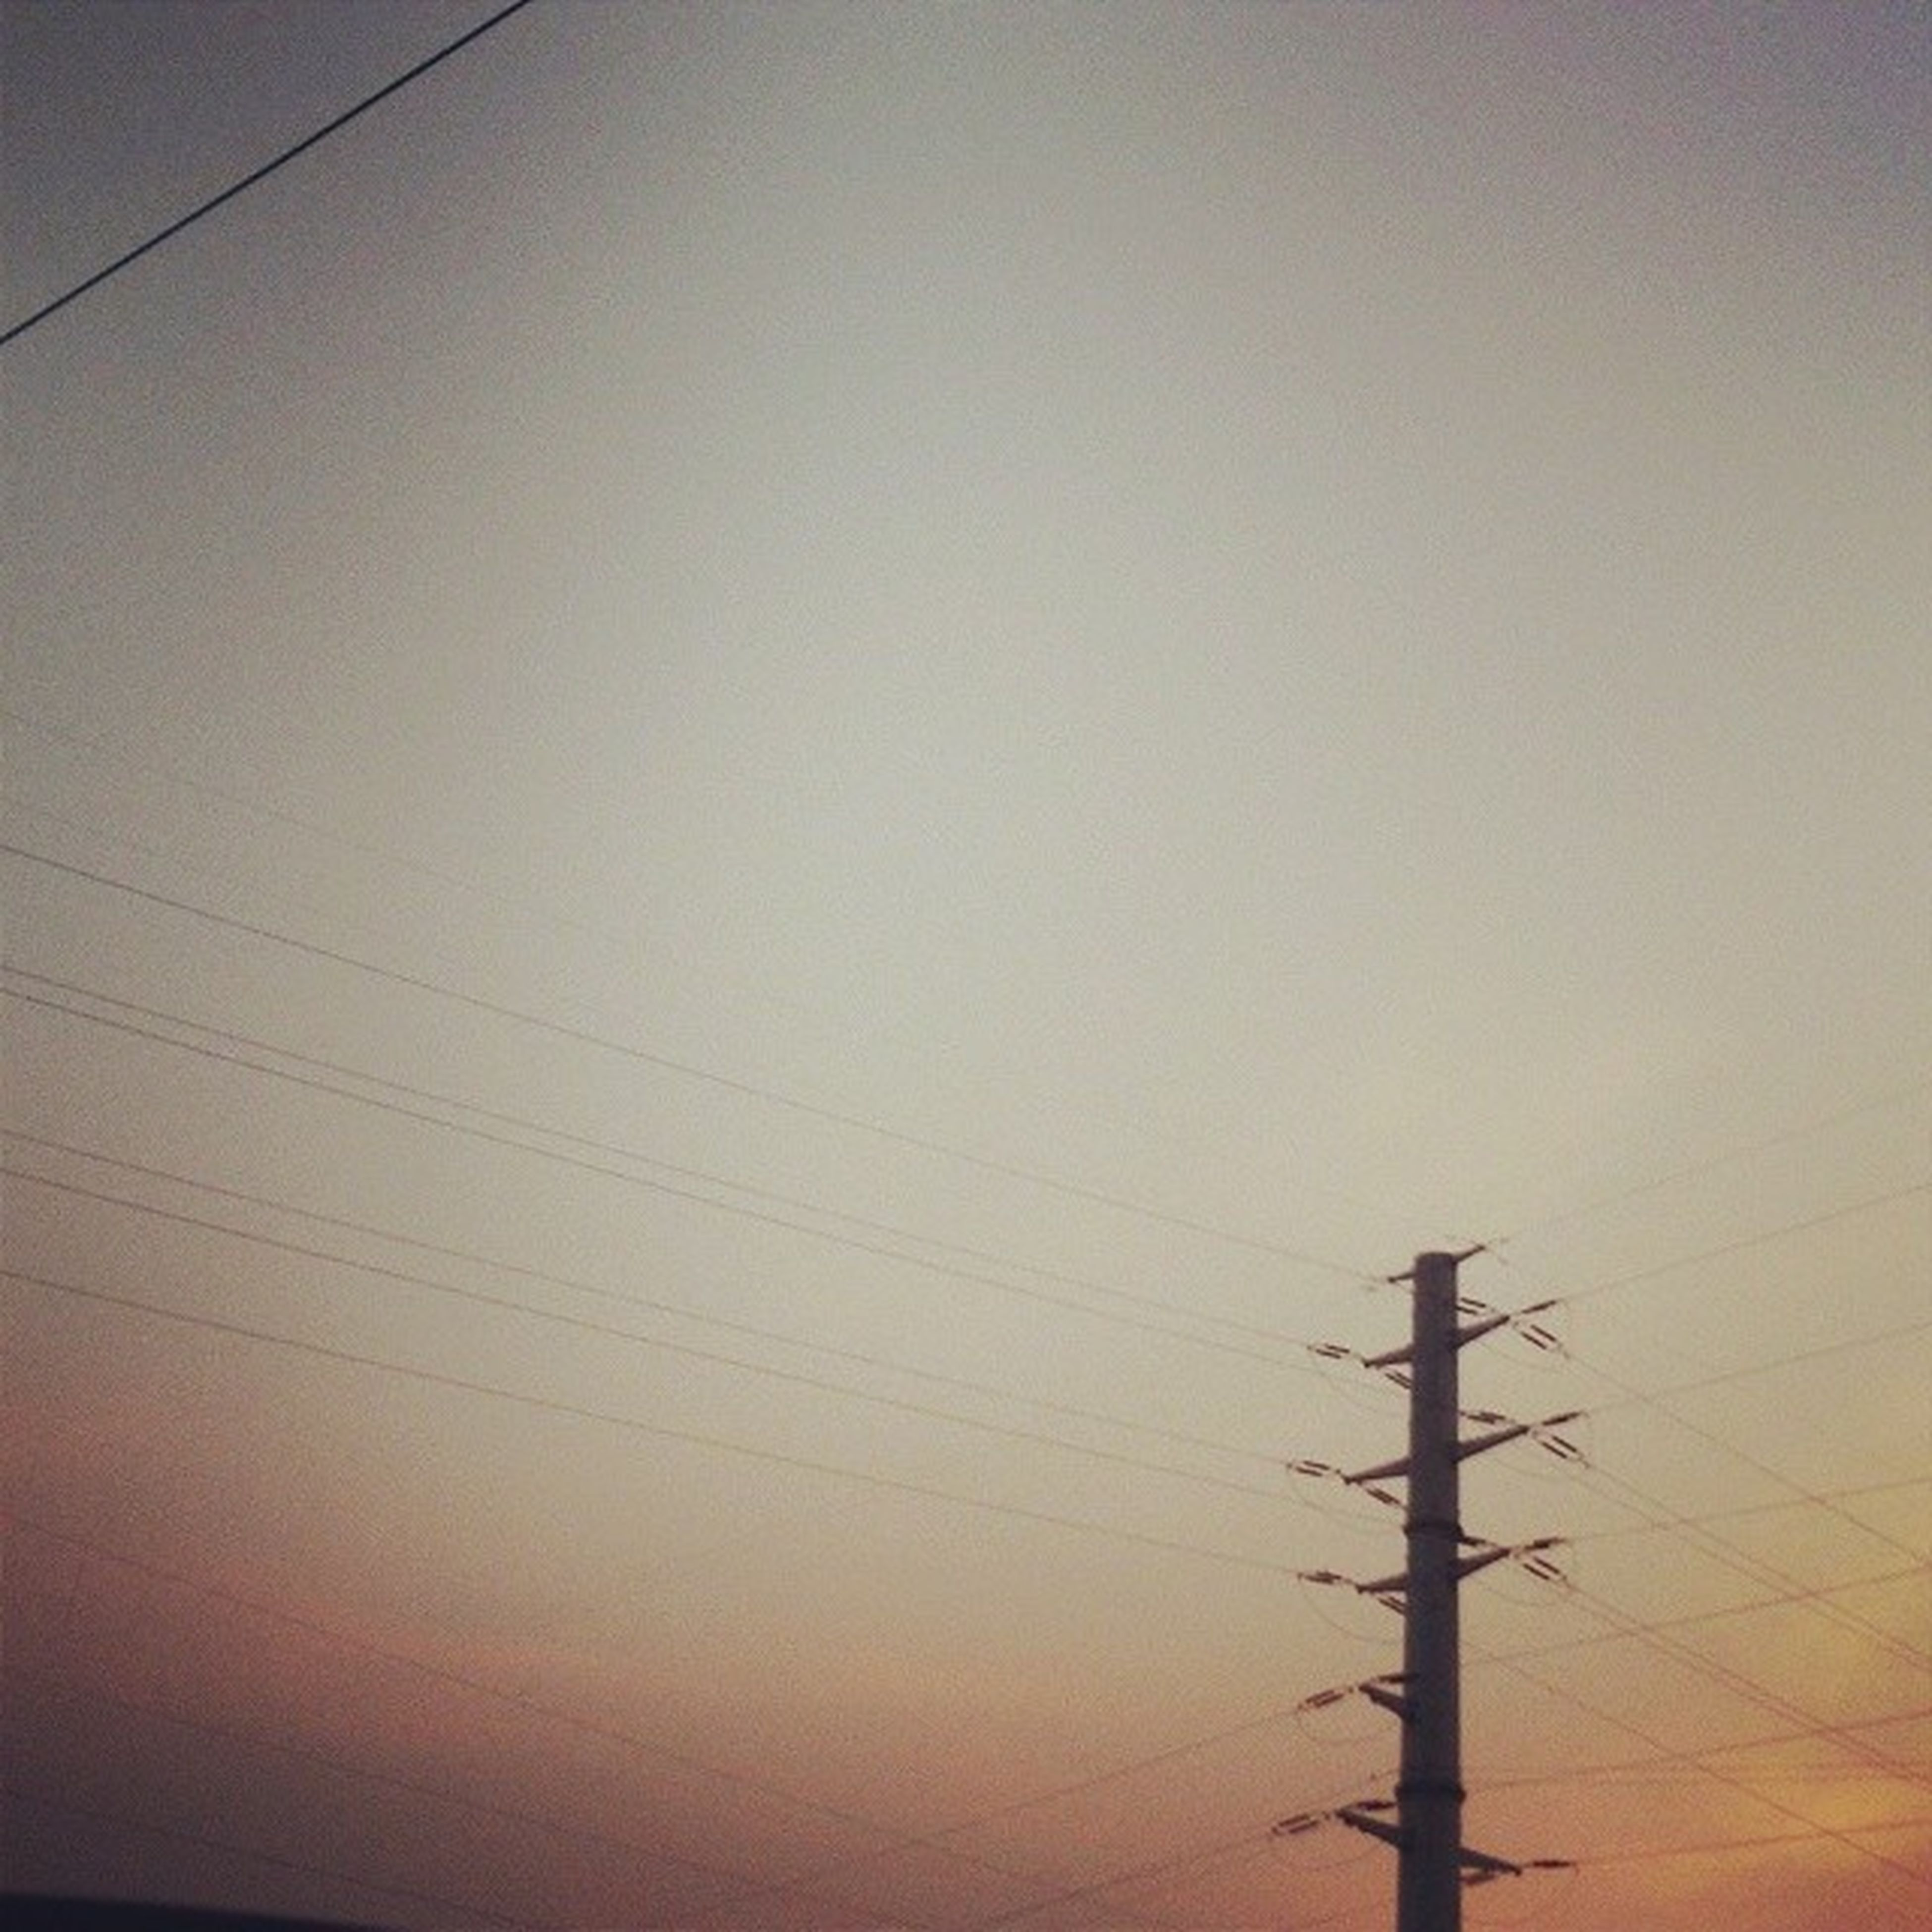 power line, power supply, electricity, electricity pylon, connection, cable, fuel and power generation, technology, low angle view, clear sky, power cable, silhouette, sunset, tranquility, sky, copy space, outdoors, no people, nature, tranquil scene